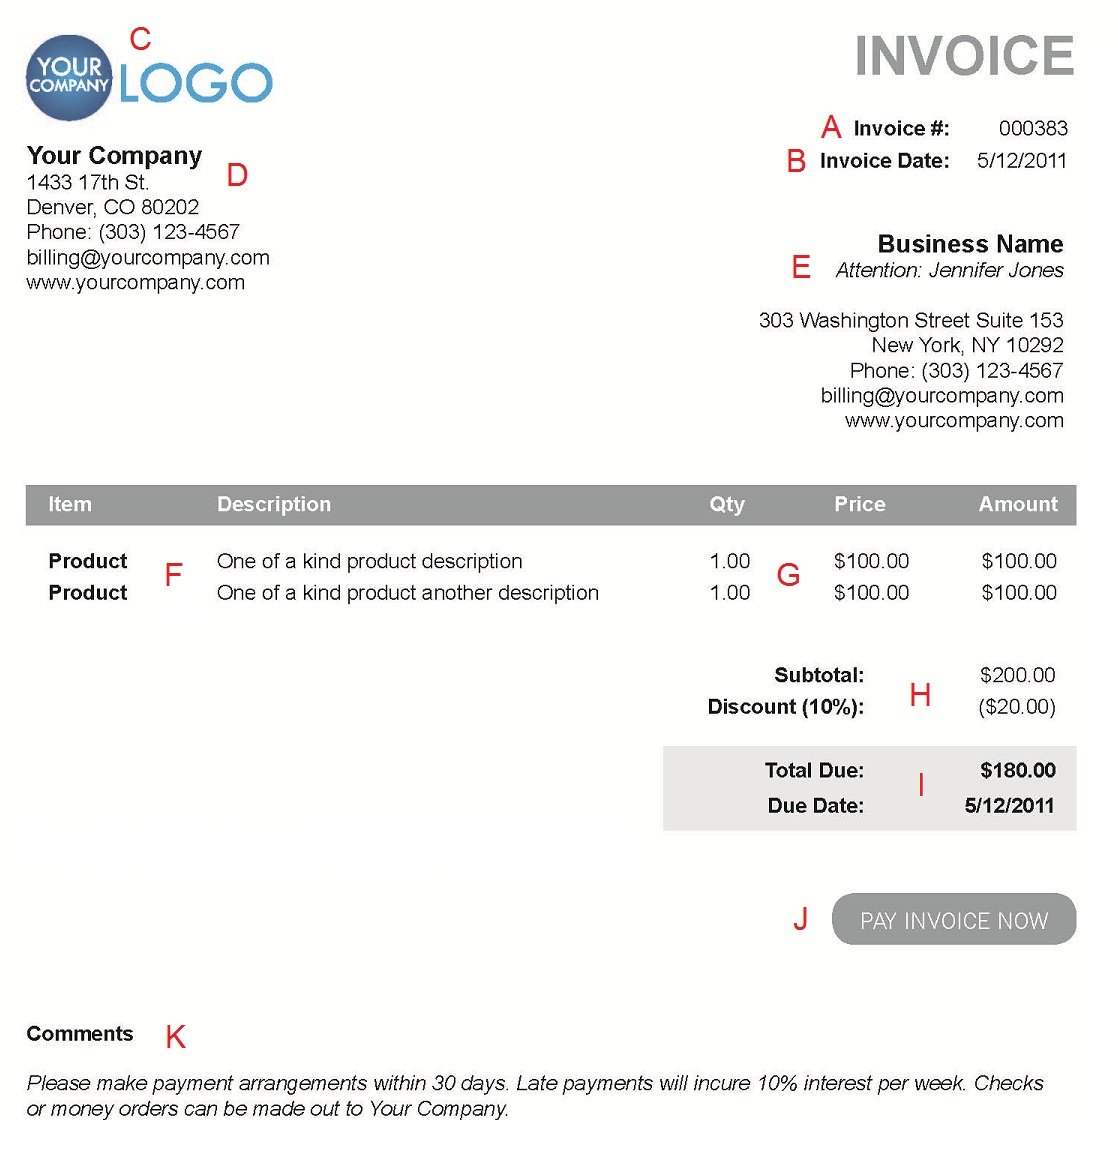 Gpwaus  Unique The  Different Sections Of An Electronic Payment Invoice With Entrancing A  With Delightful Washington Dc Taxi Receipt Also Receipt For Pizza Dough In Addition Simple Cash Receipt And Sevis Payment Receipt As Well As Equipment Interchange Receipt Additionally Receipt Cards From Paysimplecom With Gpwaus  Entrancing The  Different Sections Of An Electronic Payment Invoice With Delightful A  And Unique Washington Dc Taxi Receipt Also Receipt For Pizza Dough In Addition Simple Cash Receipt From Paysimplecom